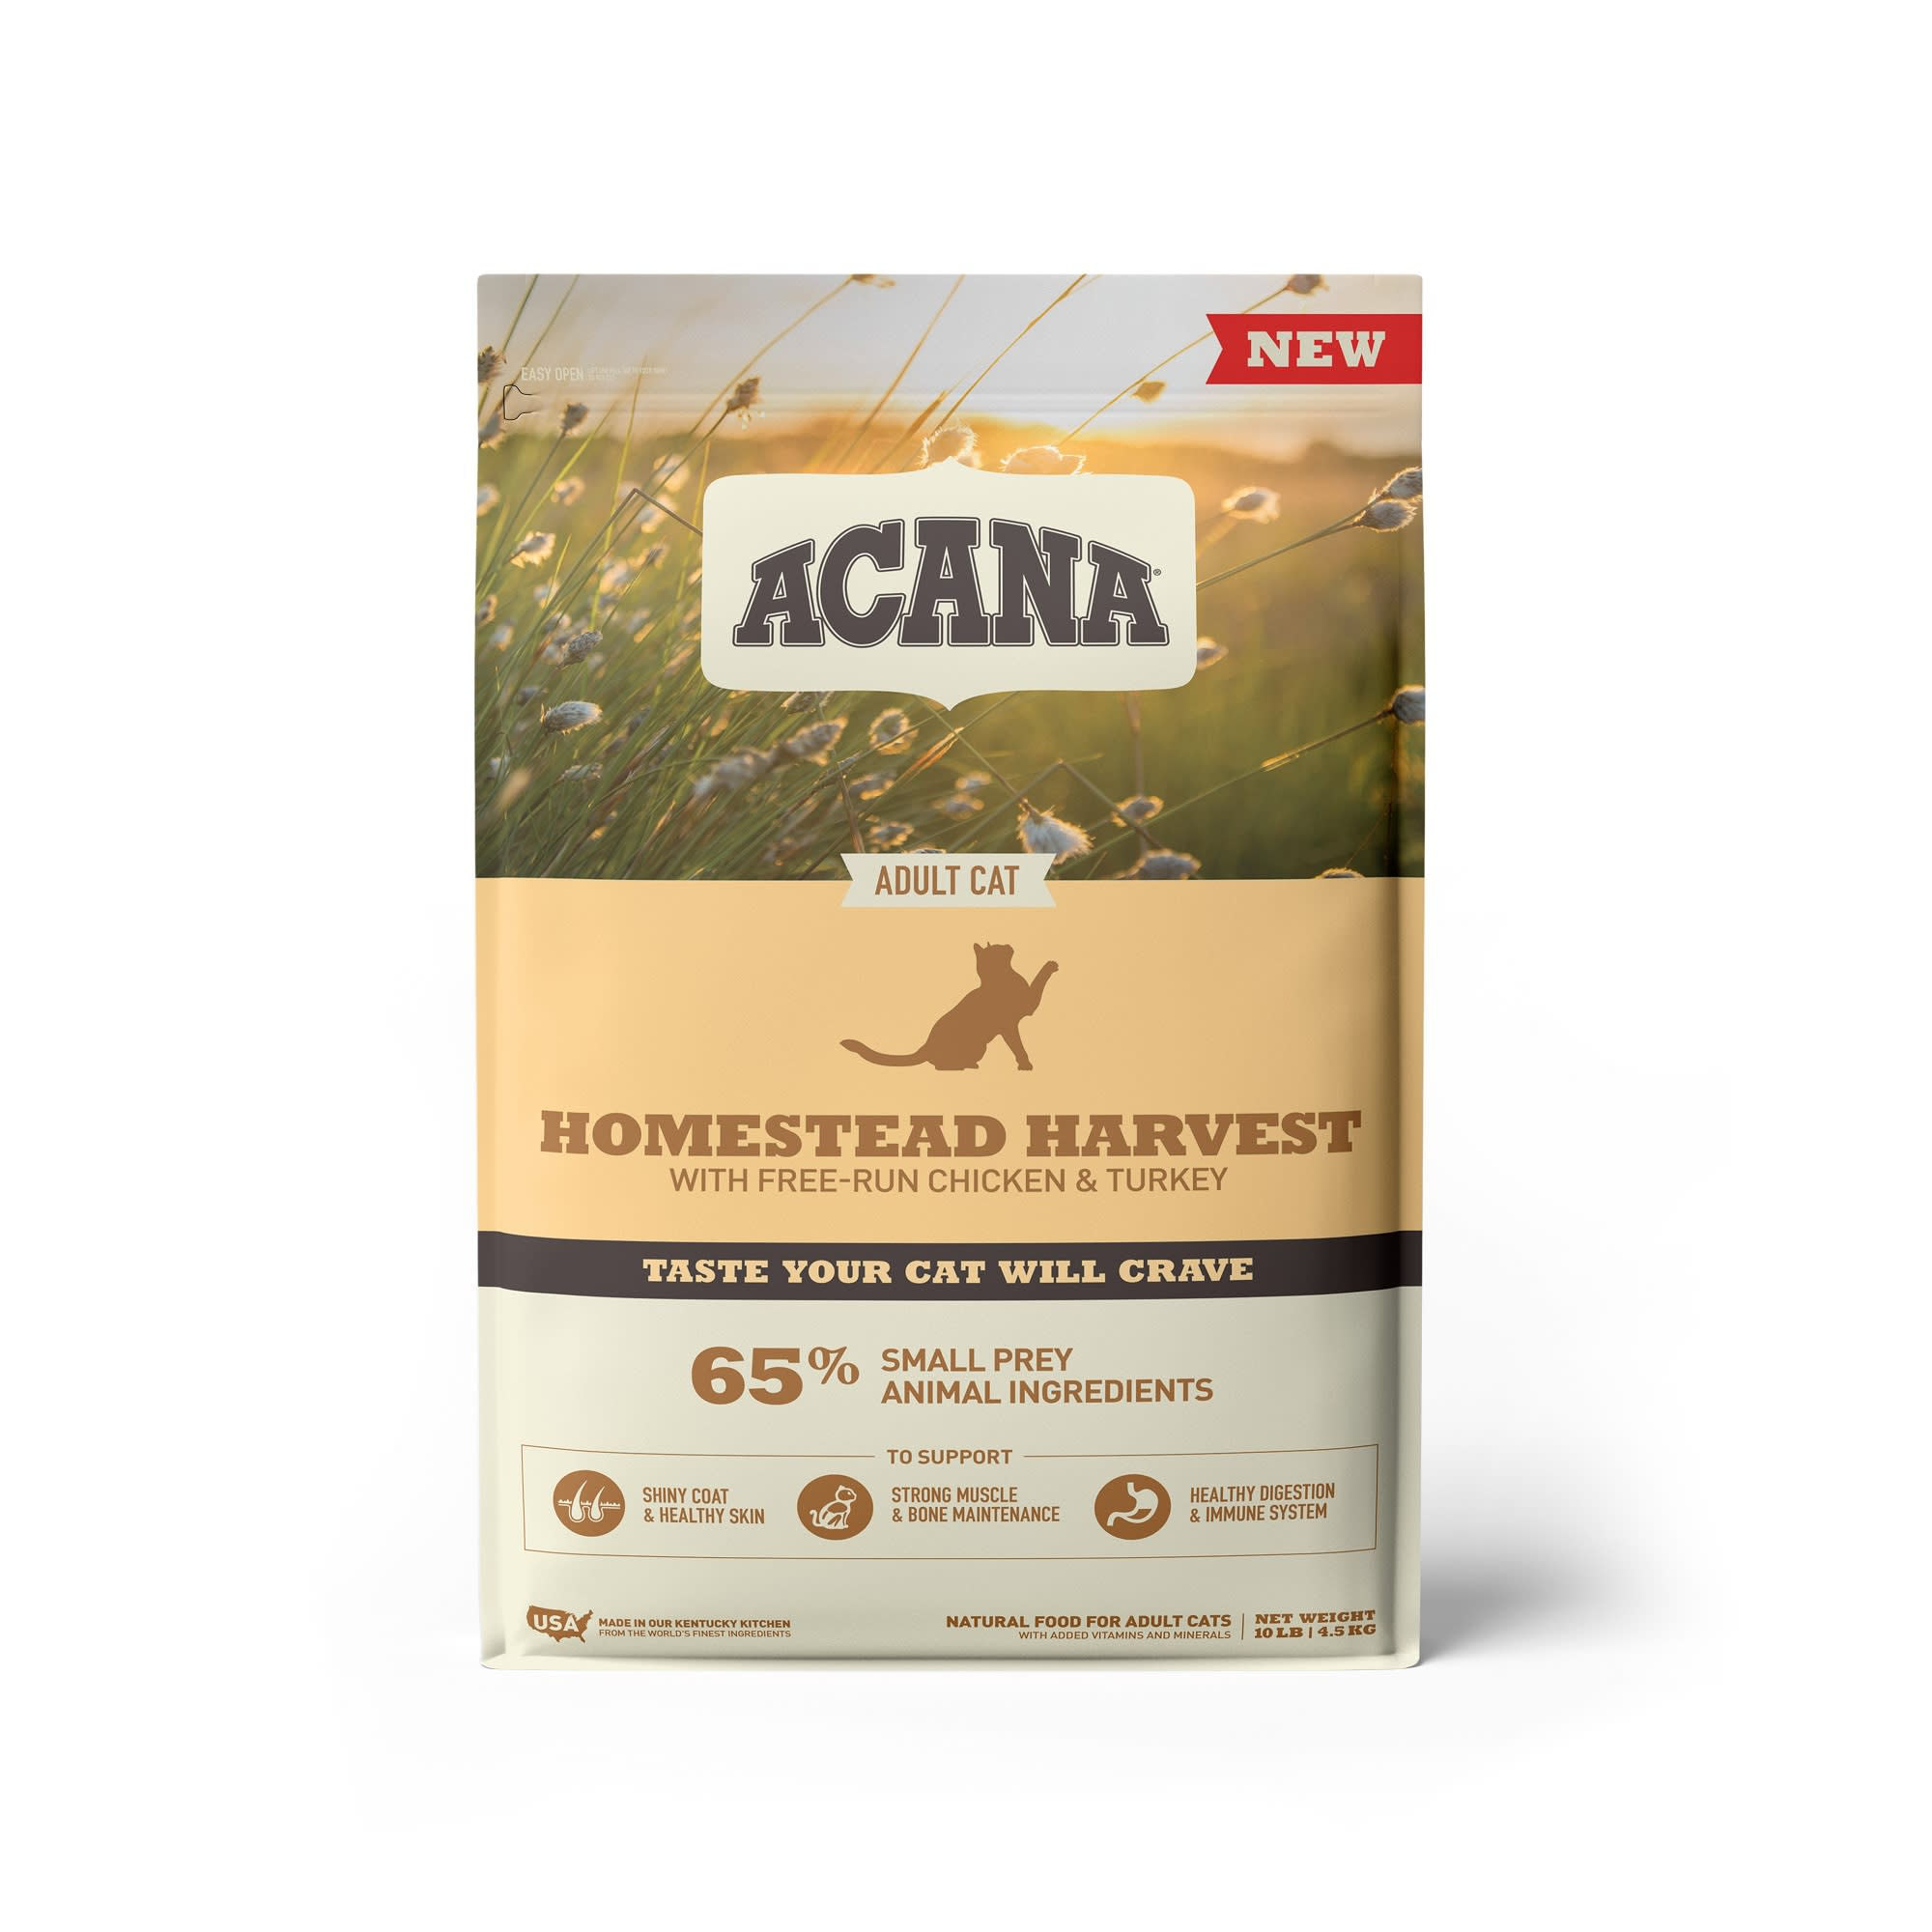 ACANA Homestead Harvest Chicken Turkey and Duck Dry Cat Food, 10 lbs.